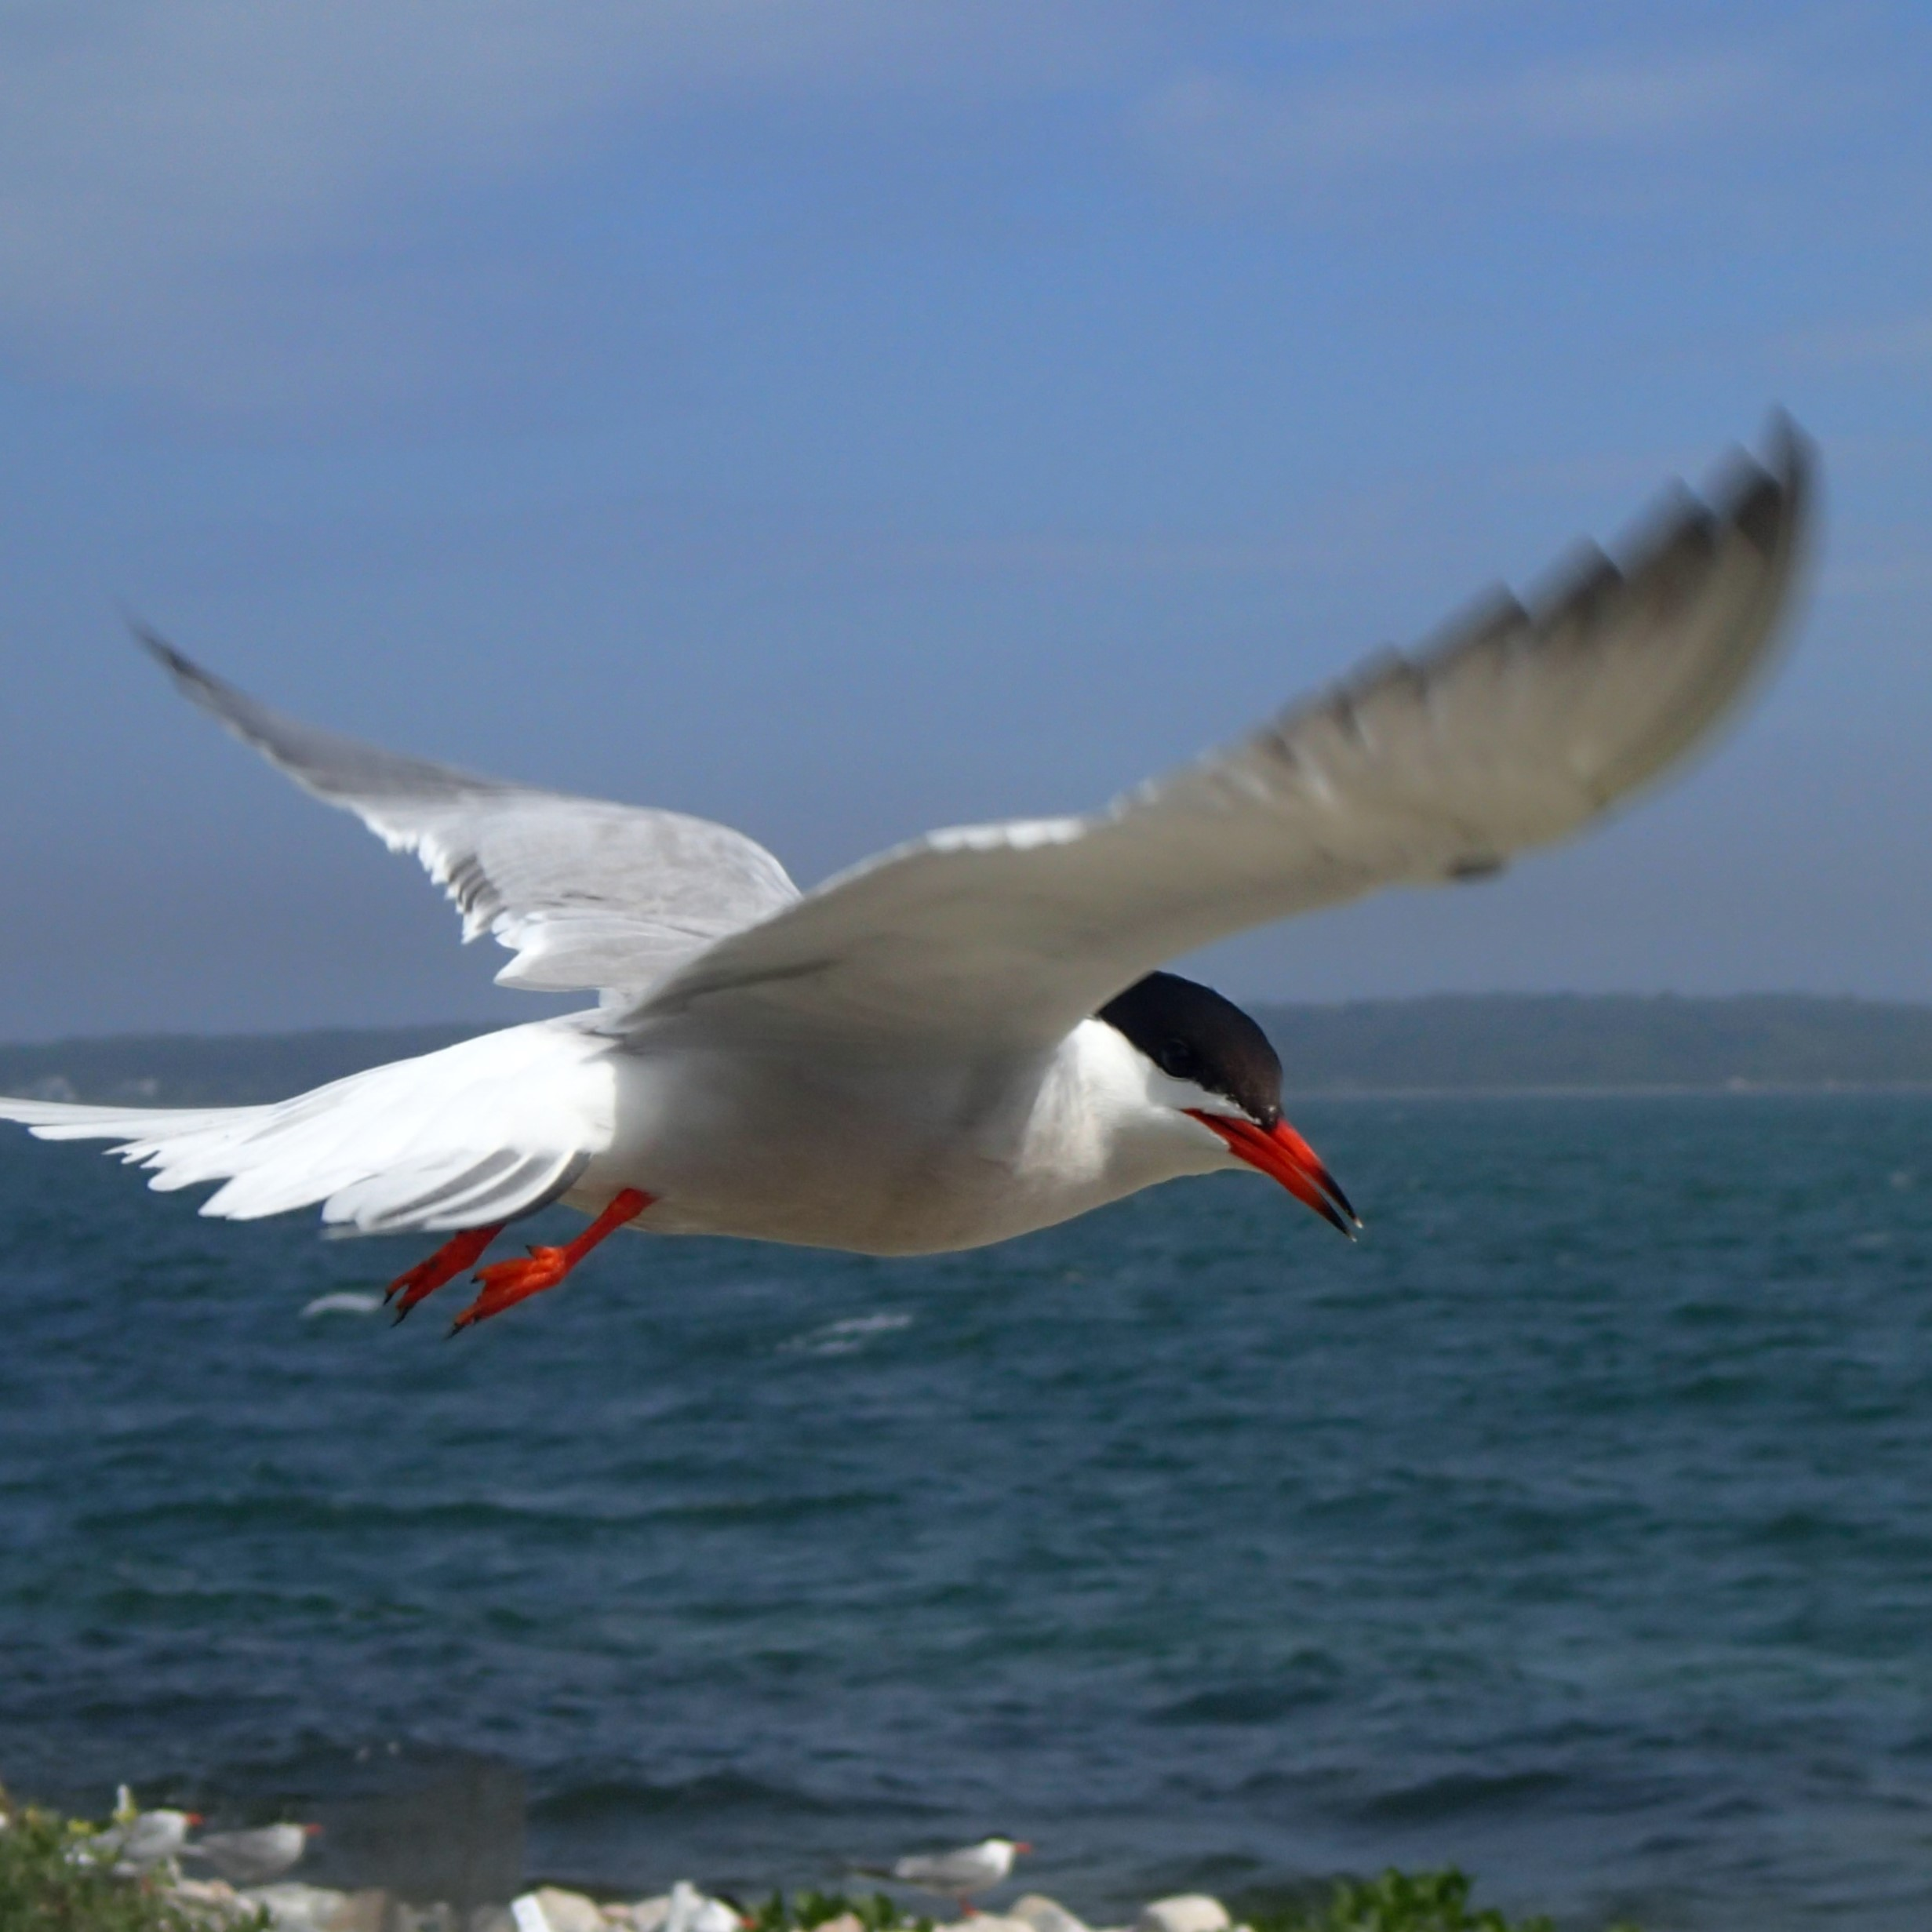 The Common Tern is a familiar seabird but is listed as a Species of Special Concern in Massachusetts. These graceful, yet aggressive, birds viciously defend their nests and colony against any and all intruders. Entering a tern colony can be compared to swatting a hornet's nest.